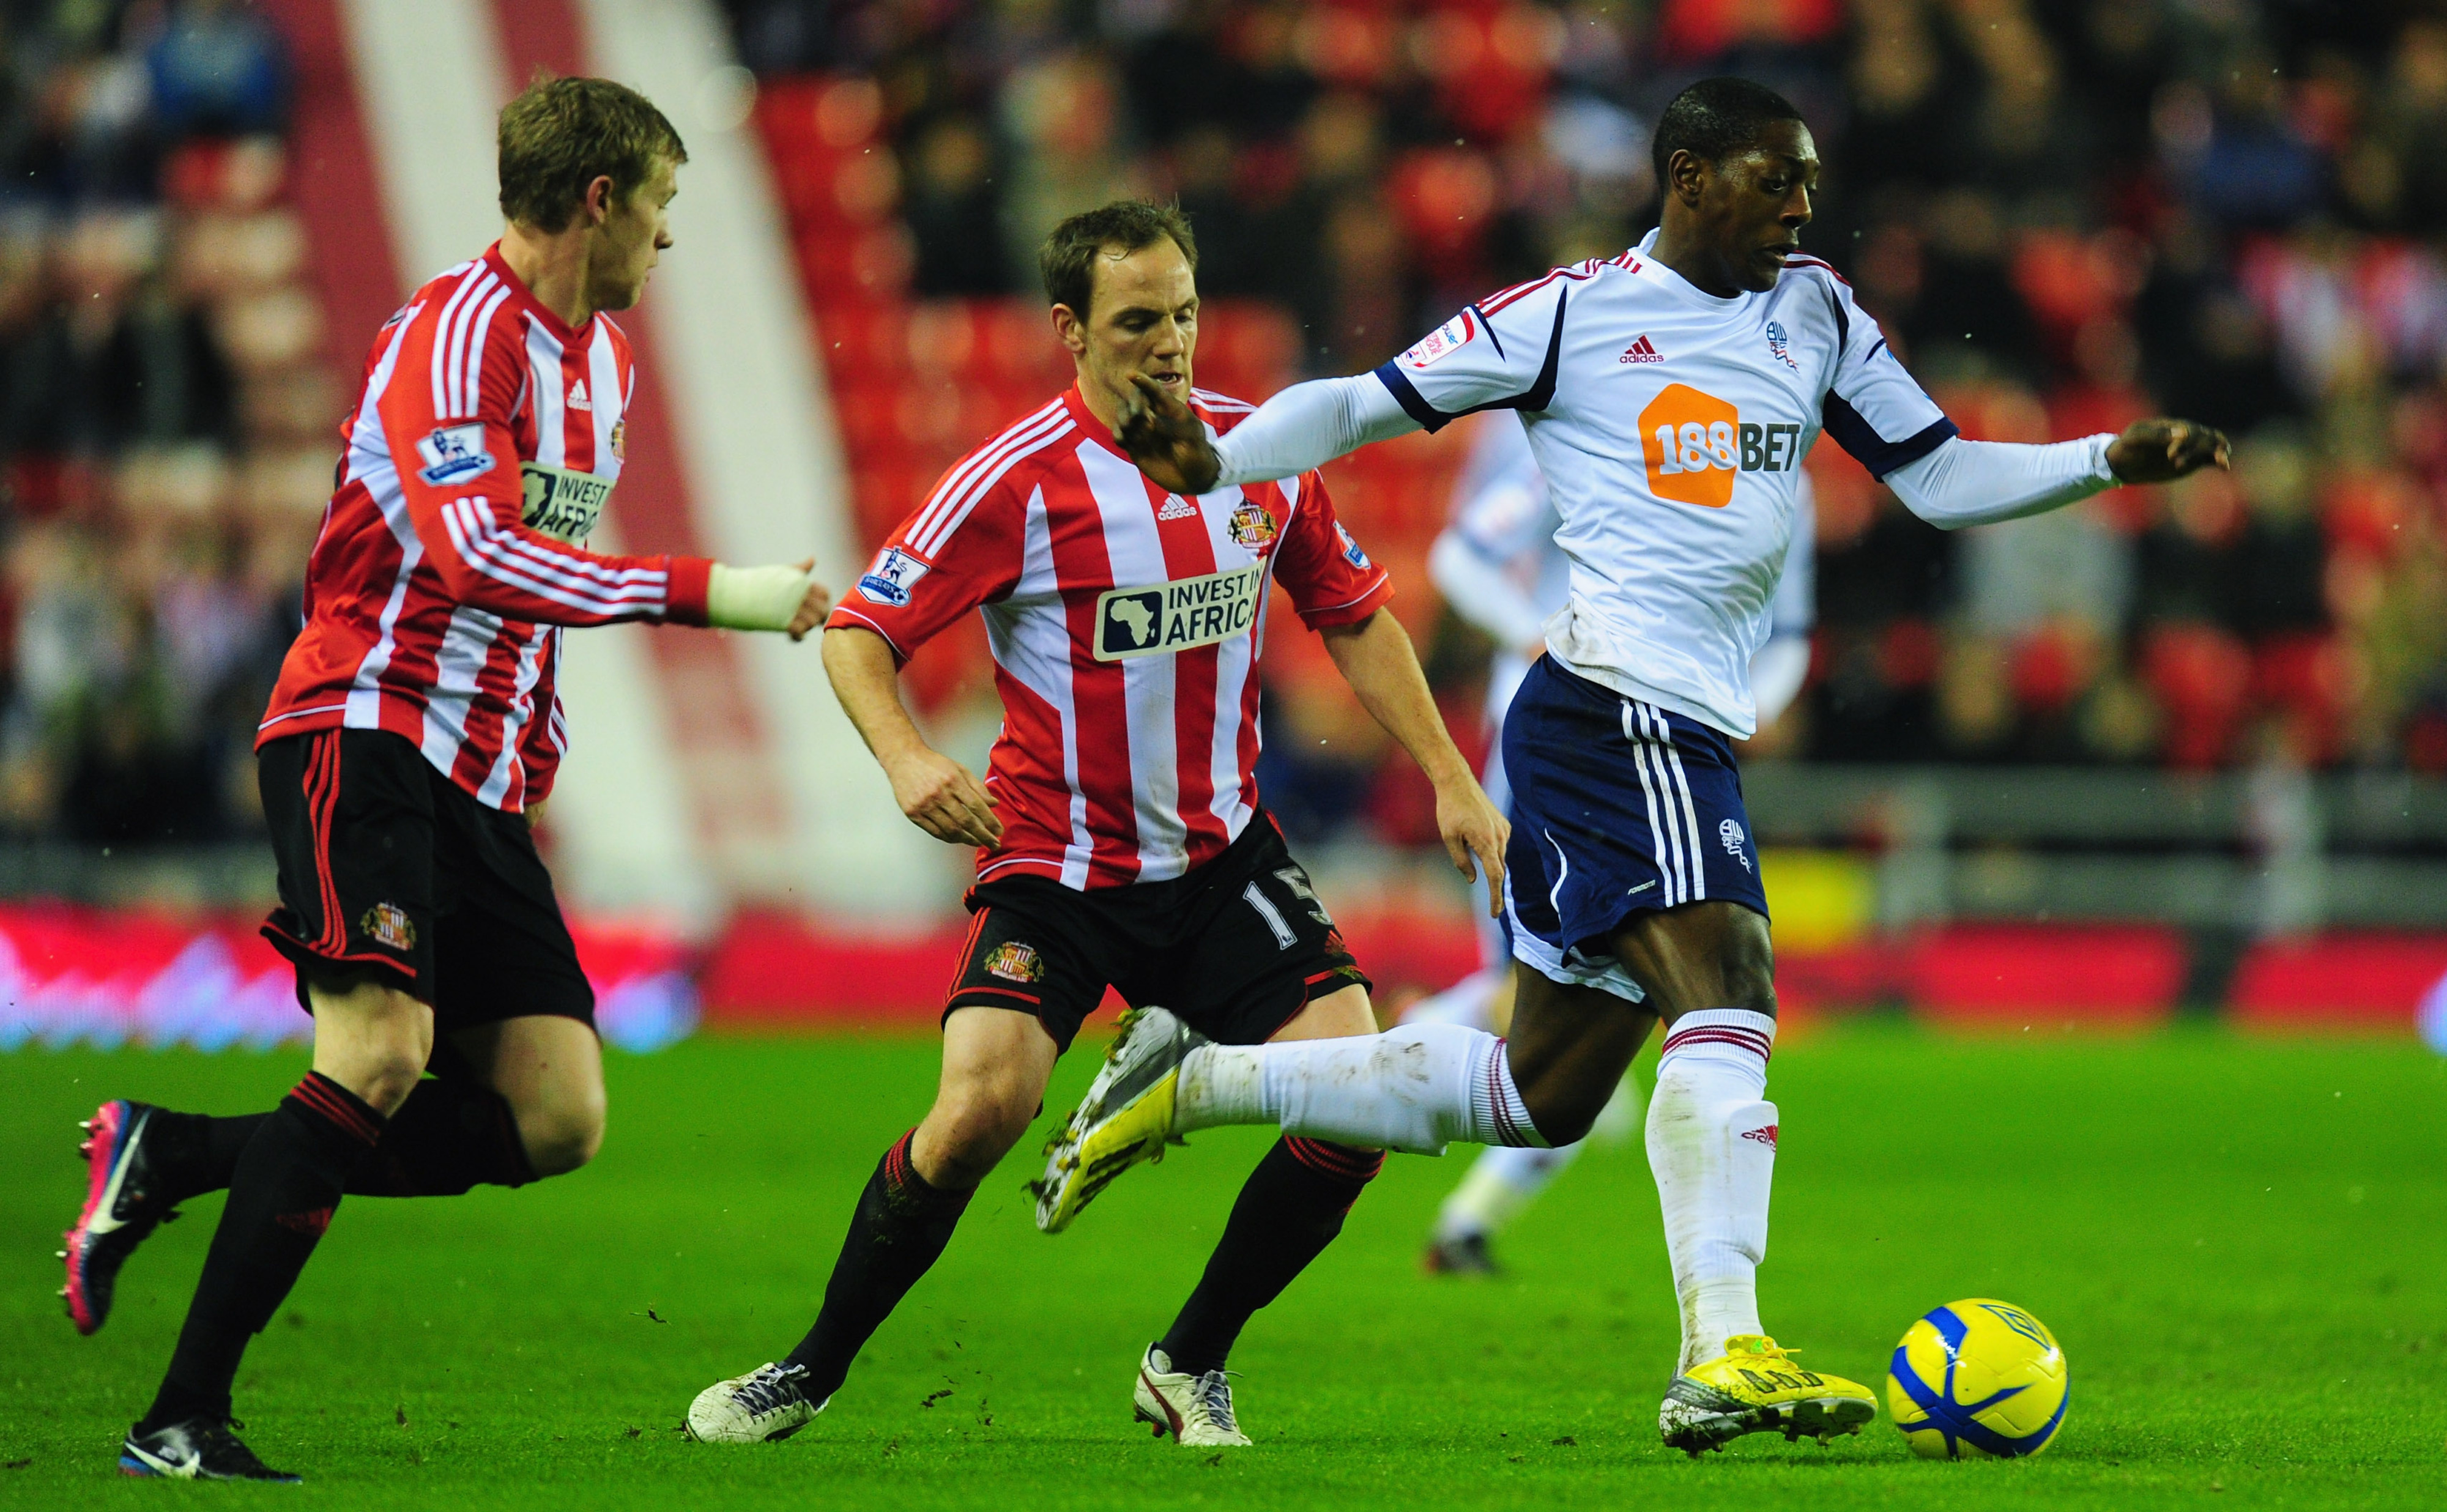 Get out of the way, Sordell is coming through